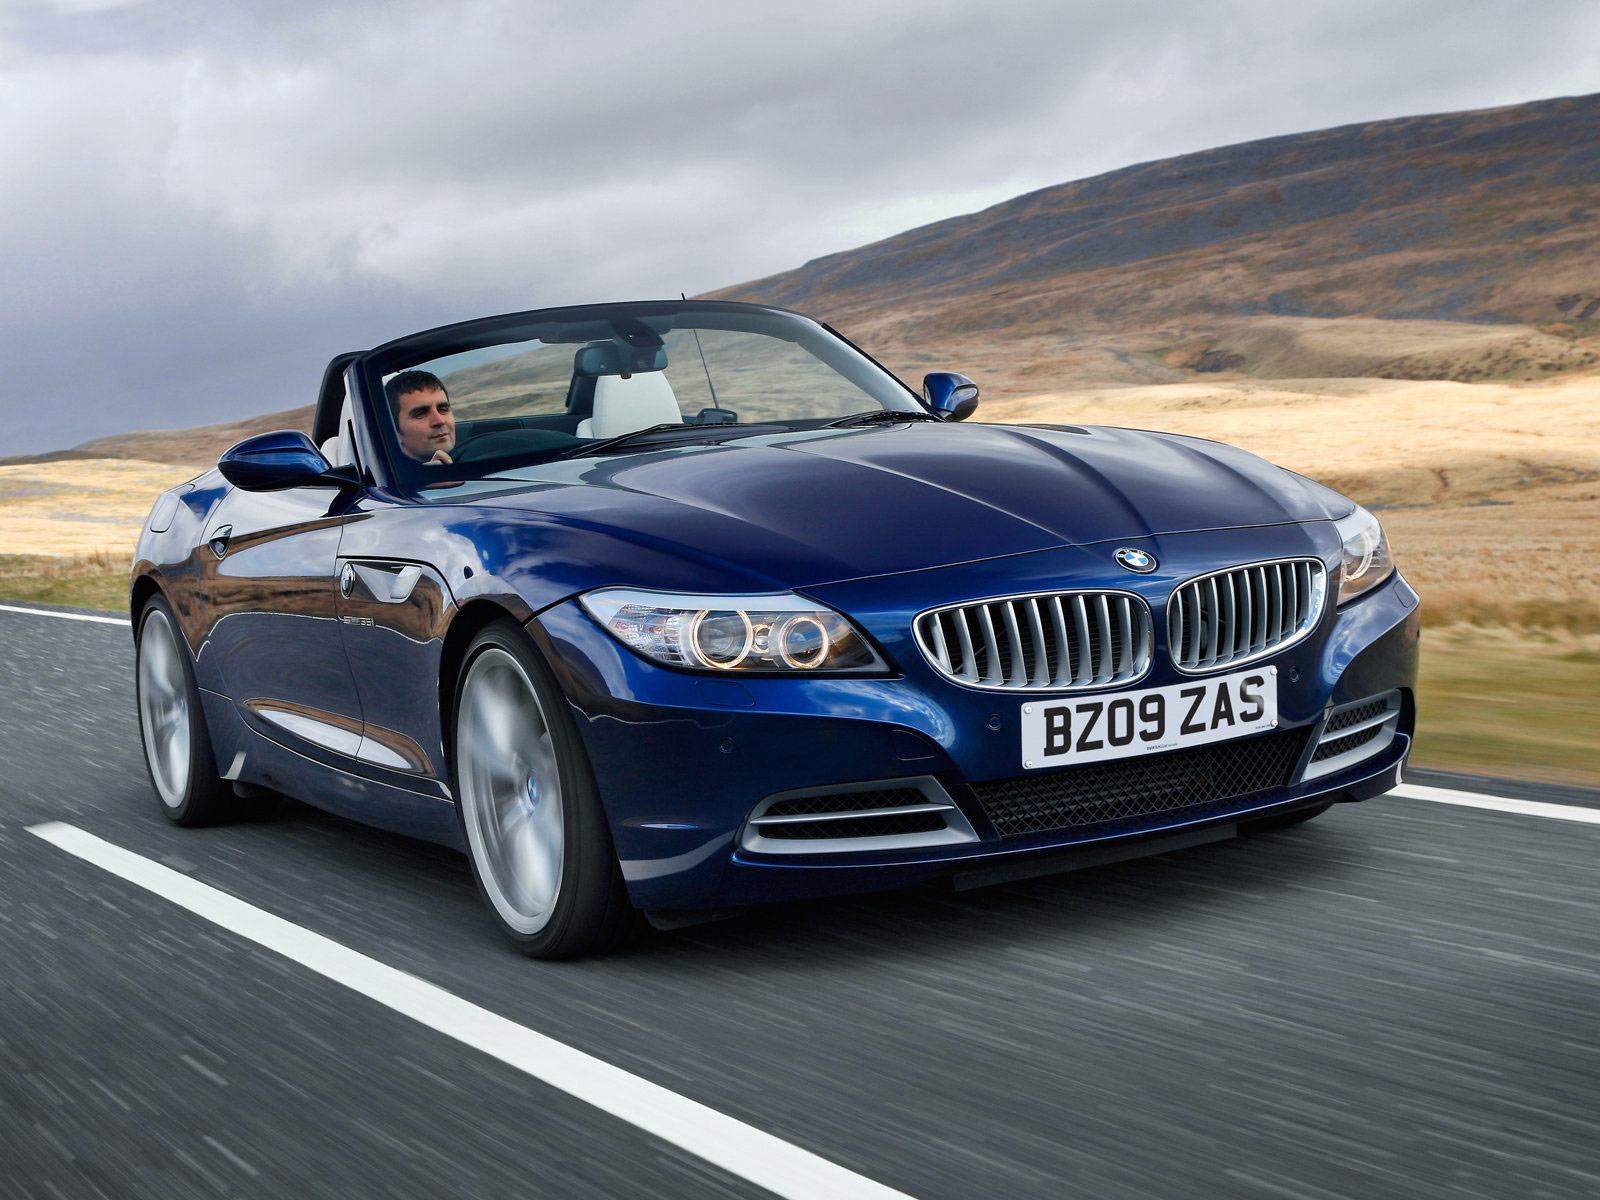 2010 Bmw Z4 Uk Version Auto Insurance Information